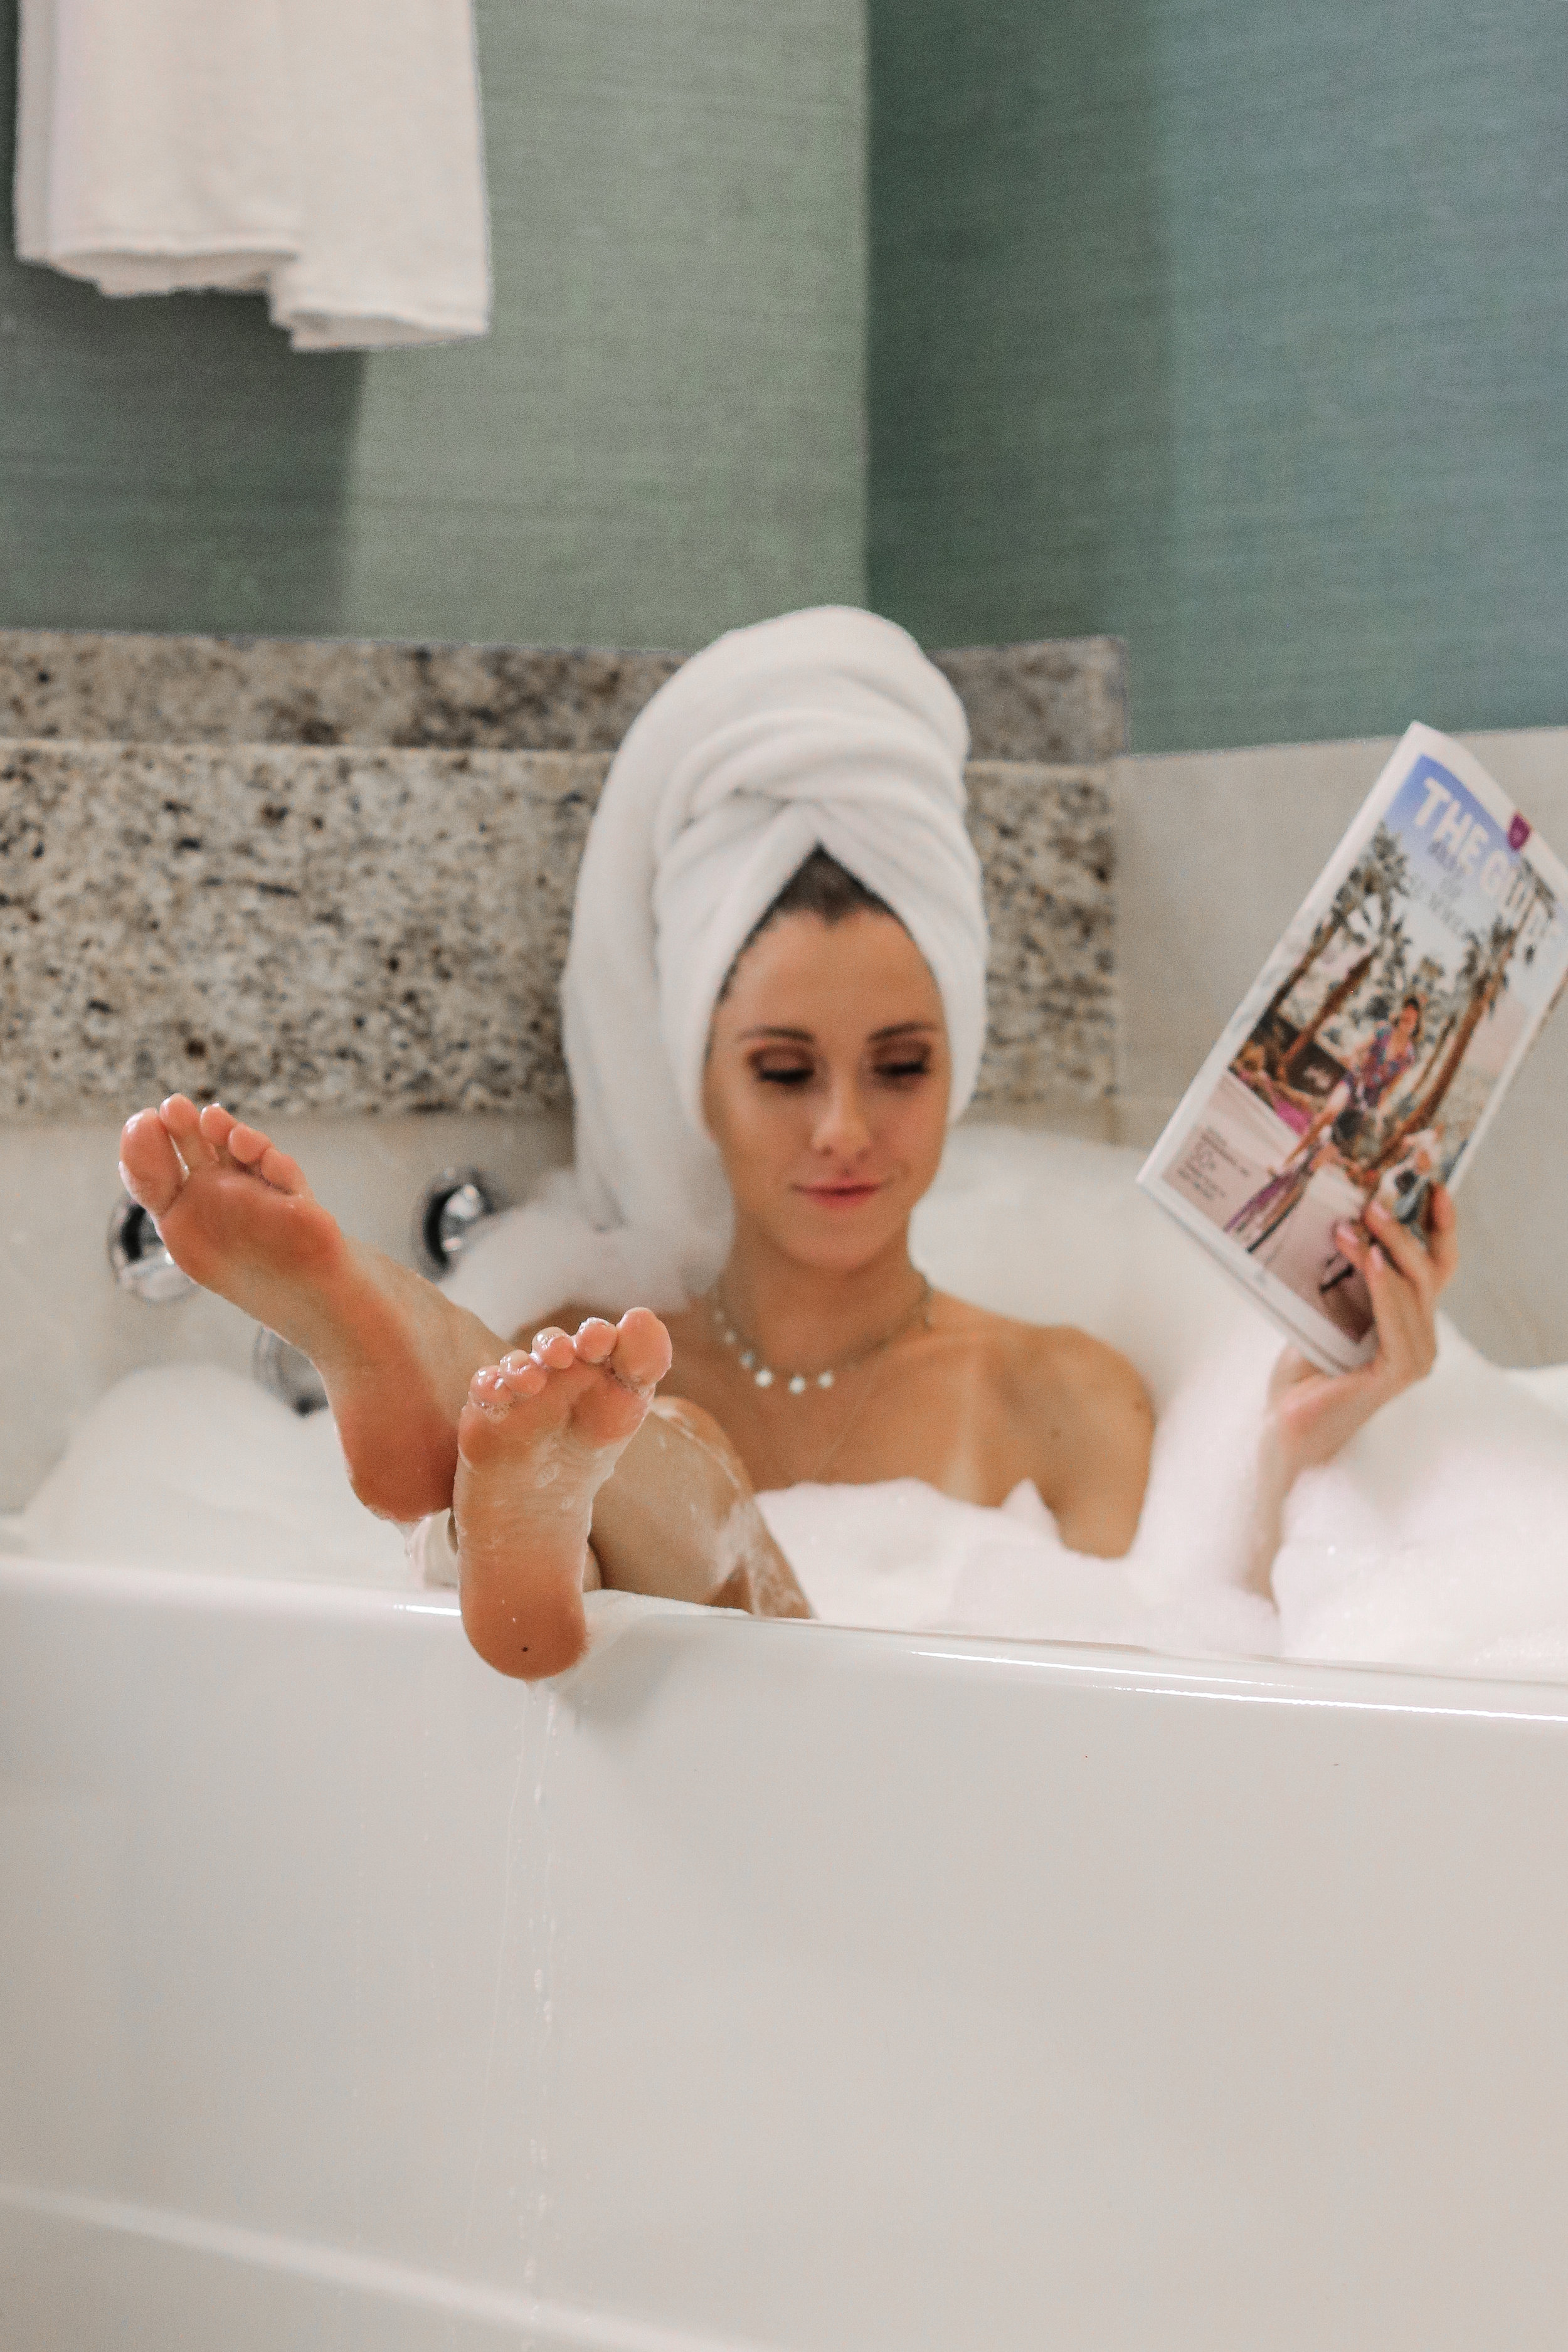 The Hungarian Brunette 4 beauty and self care habits that I picked back up that really make a huge difference